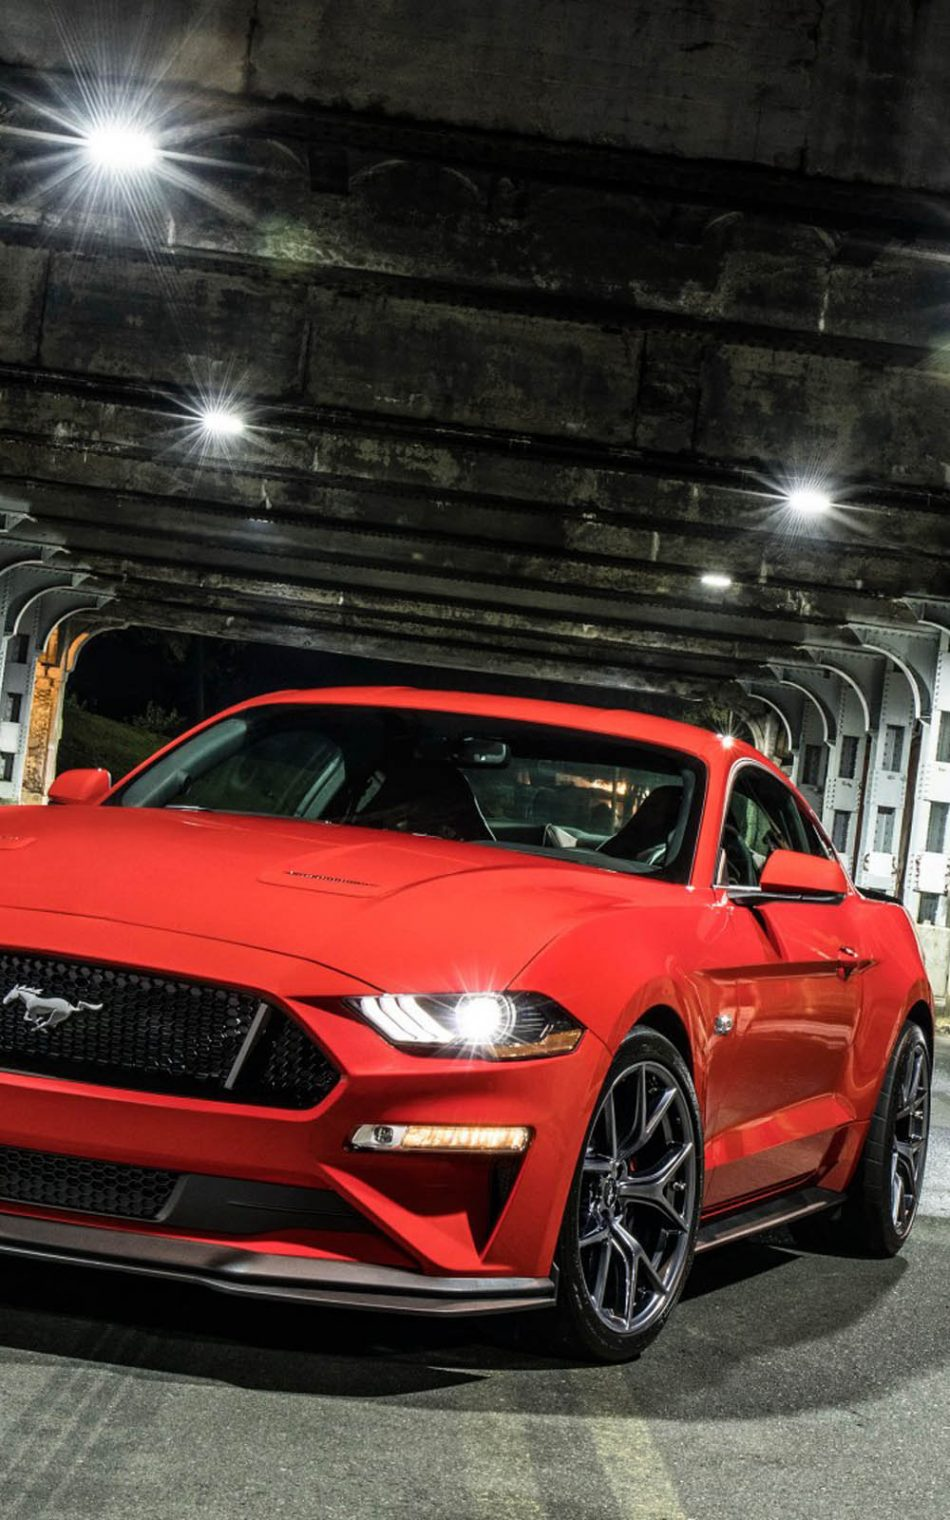 25 Ford Mustang Red Wallpapers On Wallpapersafari